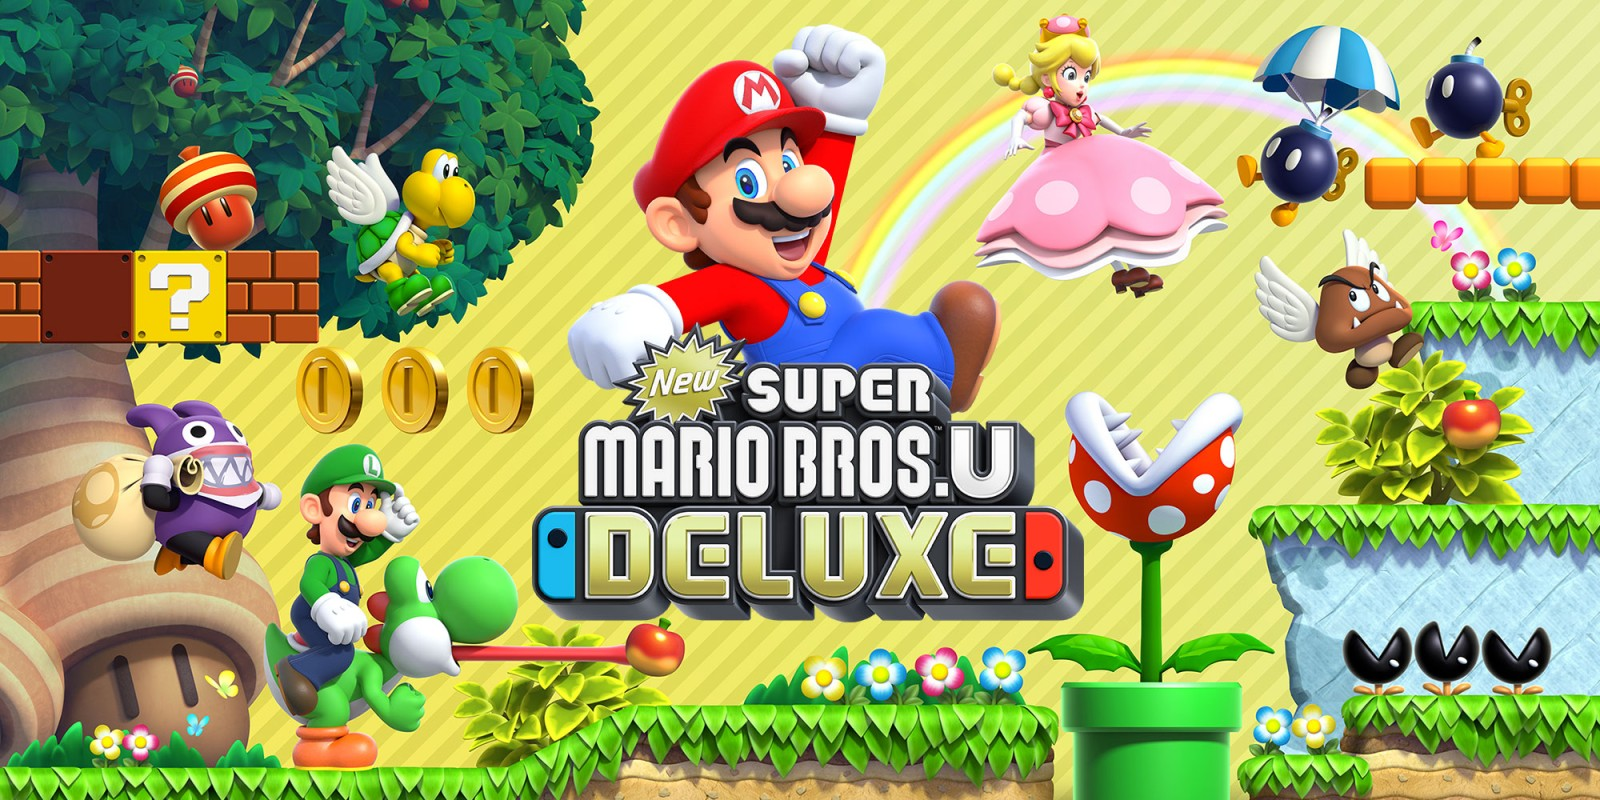 Best Labor Day Game Deals: Super Mario Bros. U $42.50, Sekiro $37.50, many more